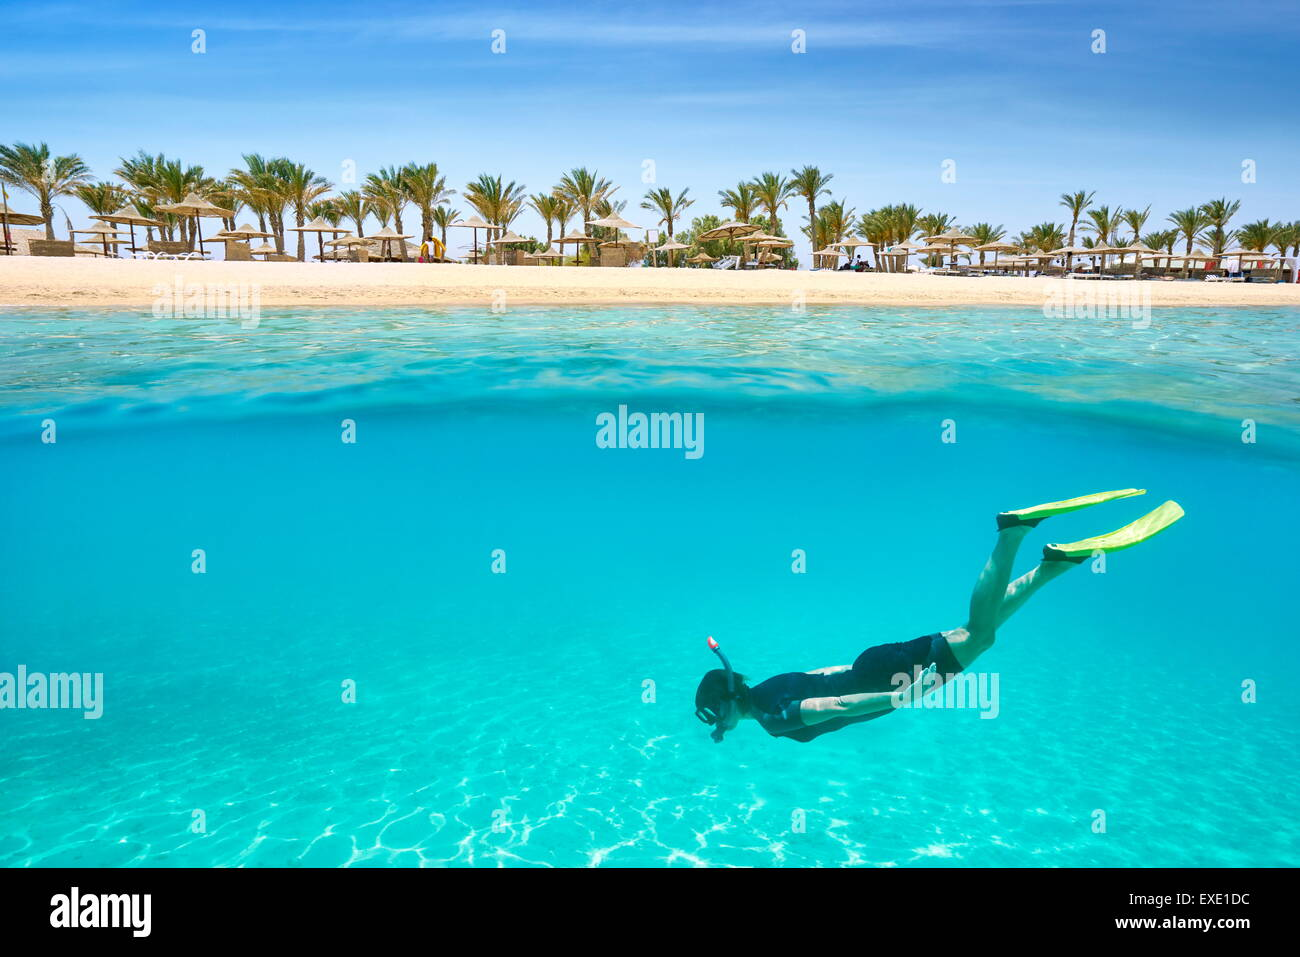 A young woman snorkeling underwater, Marsa Alam Reef, Red Sea, Egypt - Stock Image